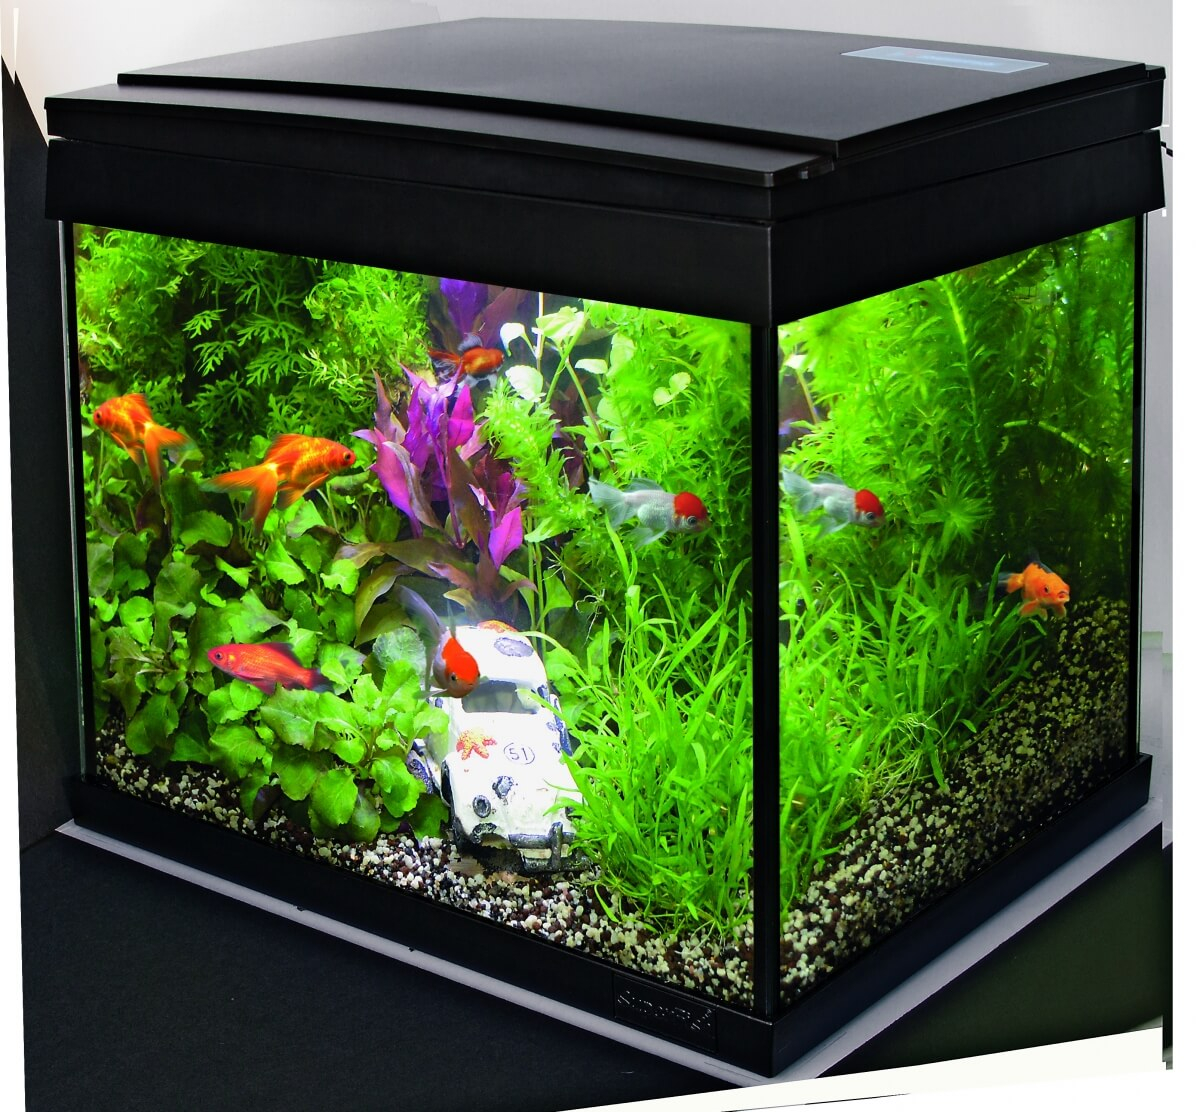 Aquarium aqua 20 led kit poisson rouge aquarium et meuble for Aquarium poisson rouge taille